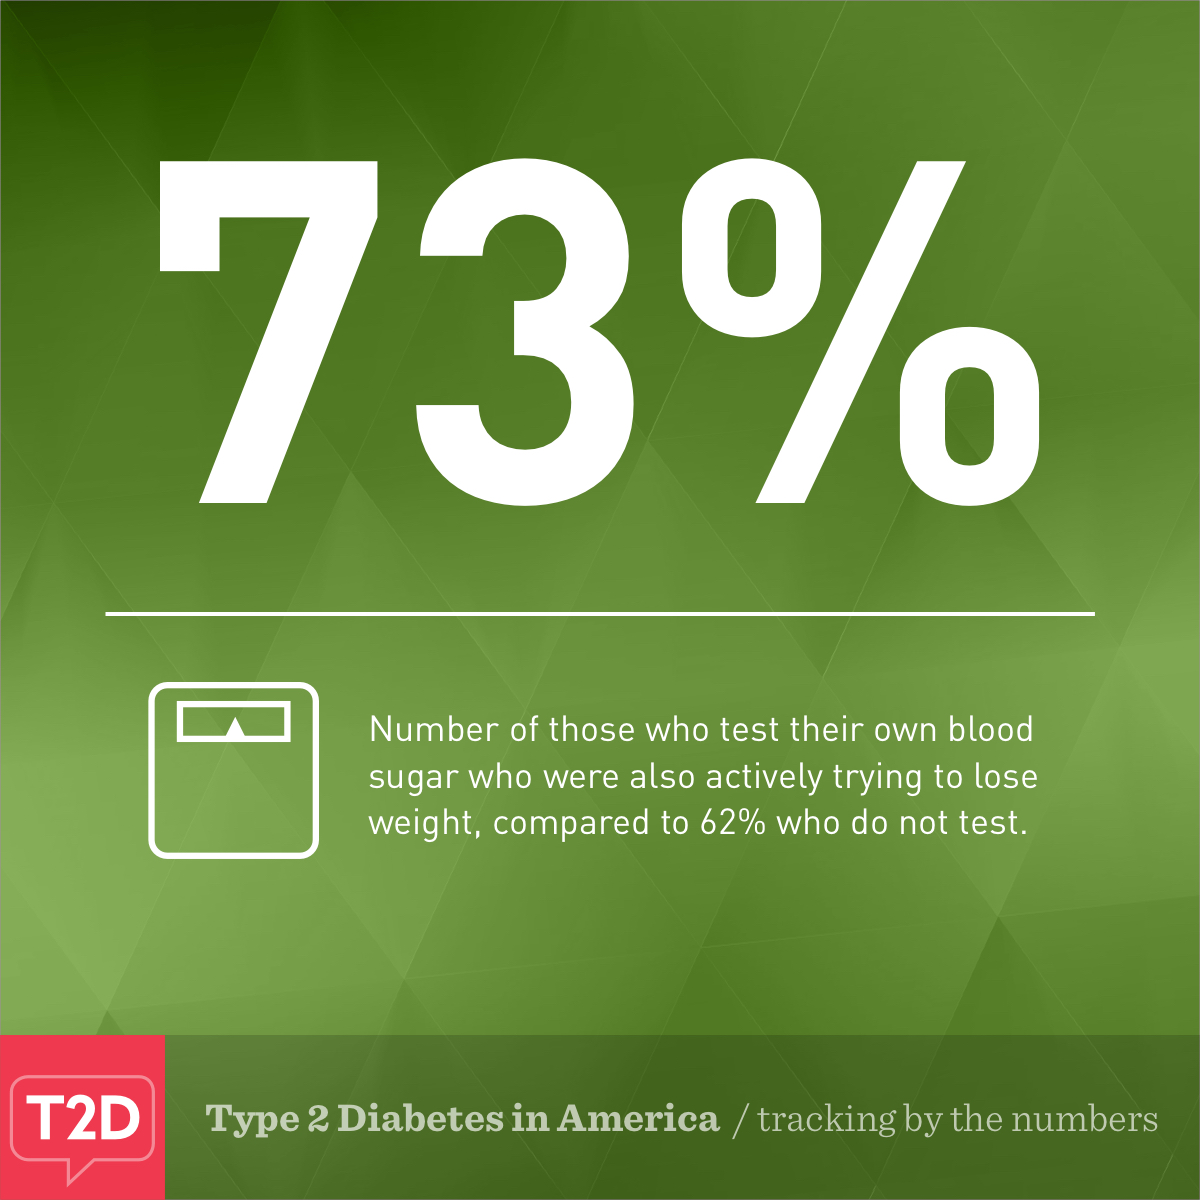 Type 2 Diabetes tracking by the numbers